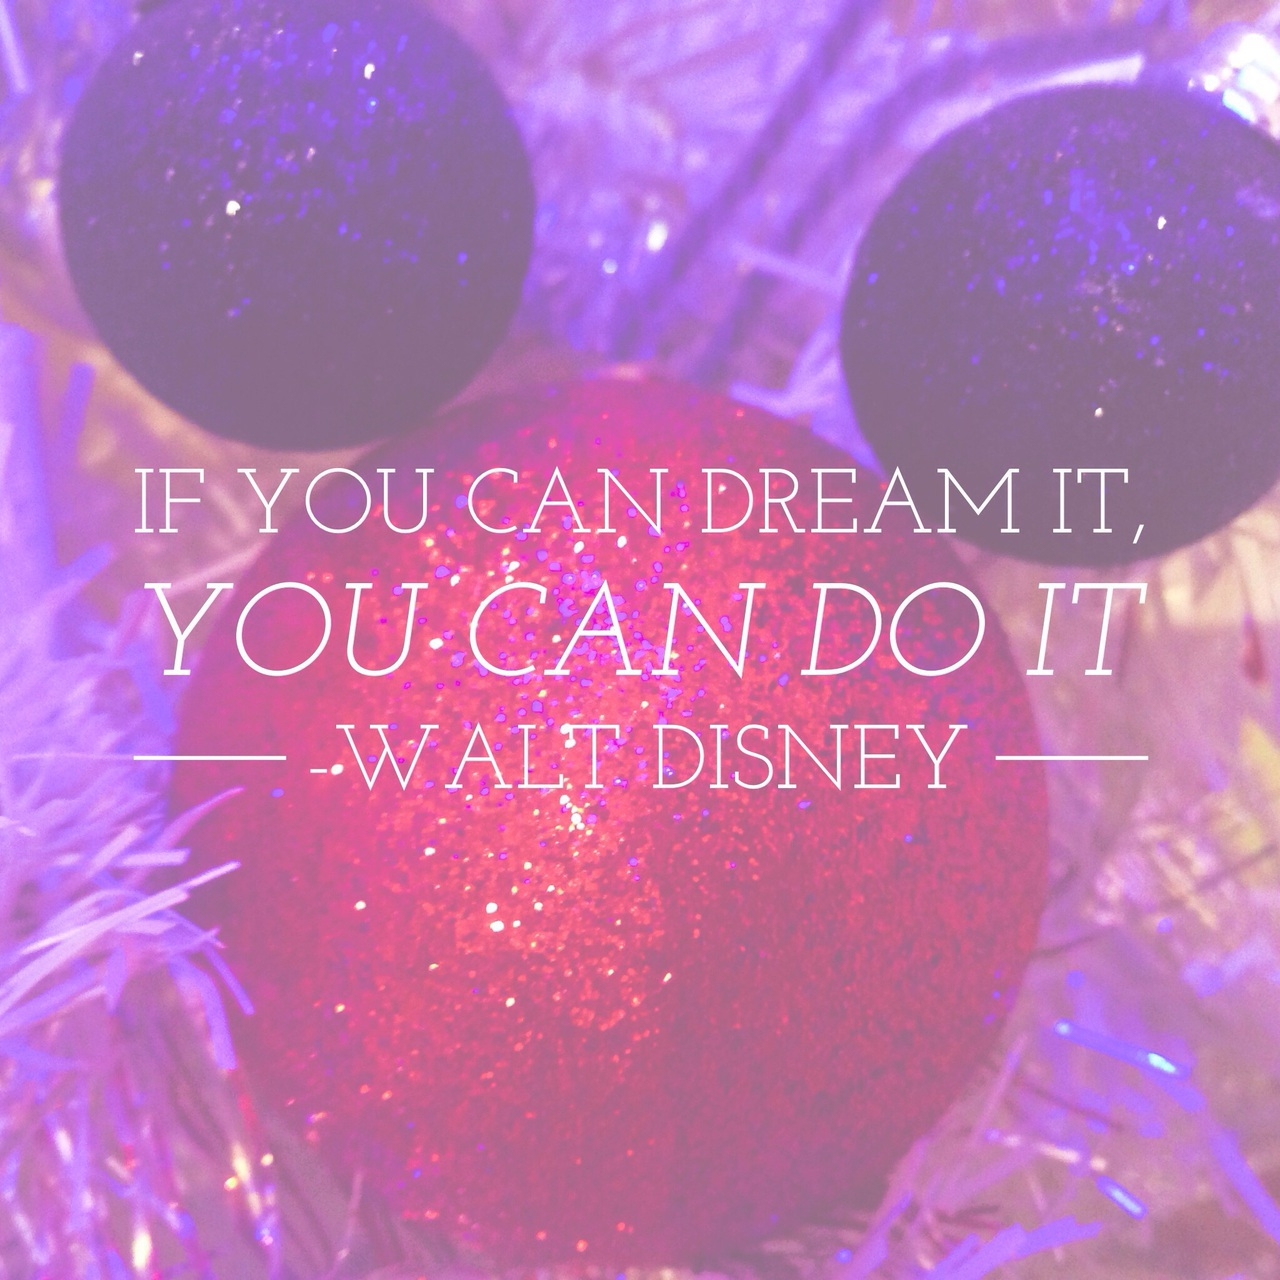 Walt Disney Christmas Quotes.Image In Quotes Truth Words Of Wisdom Collection By Reese